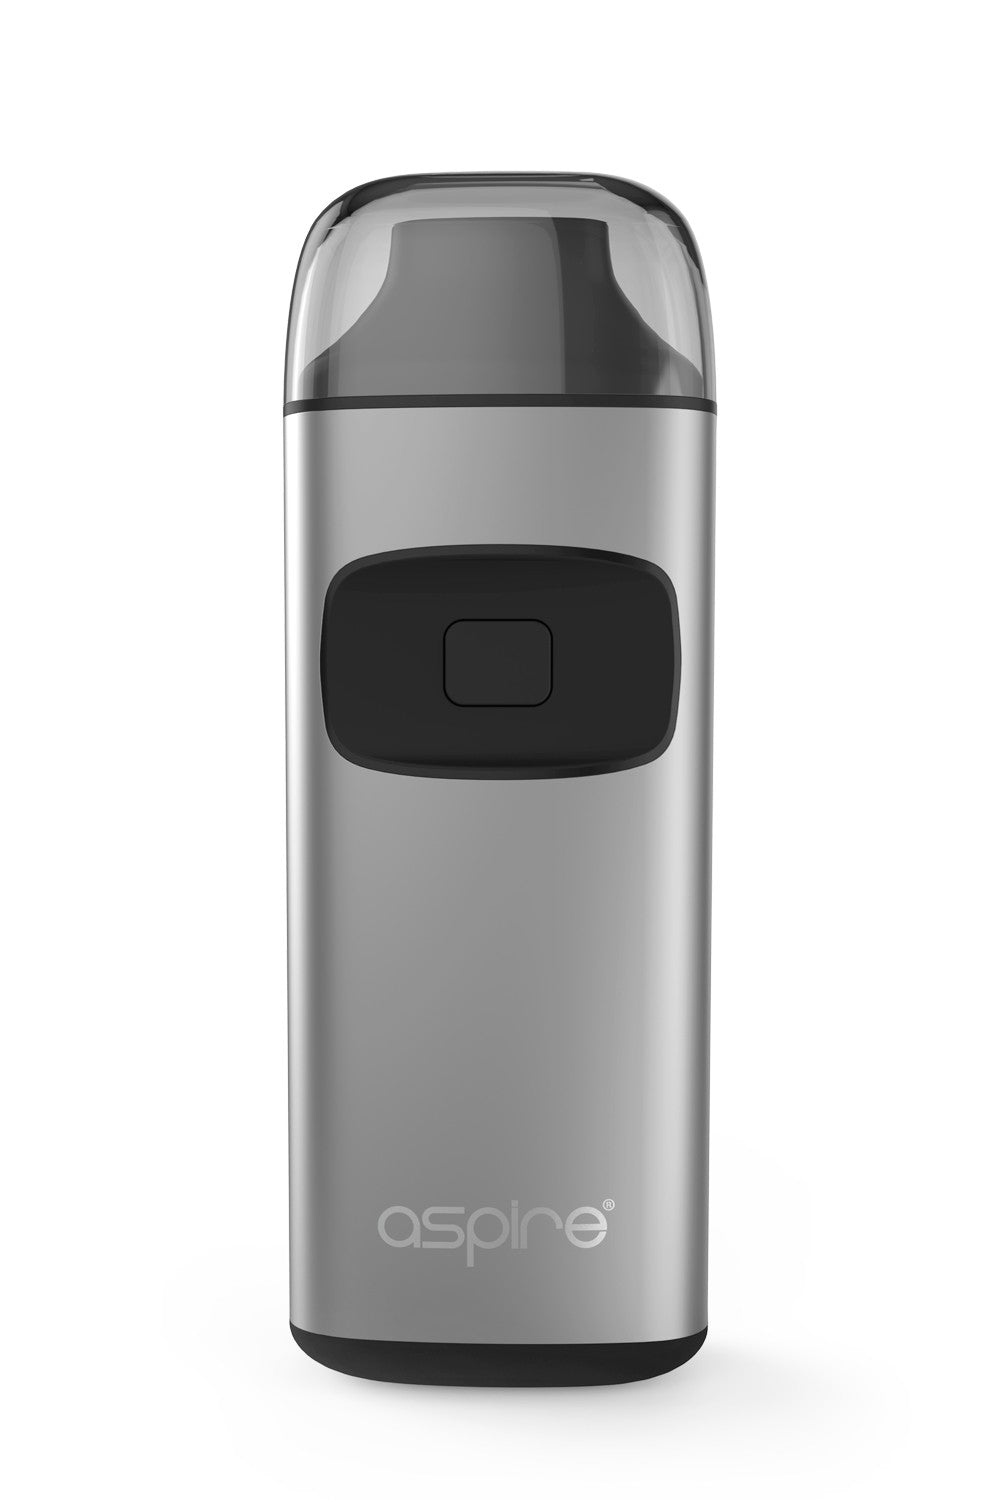 Aspire - Mod Kit Breeze AIO Gray for sale